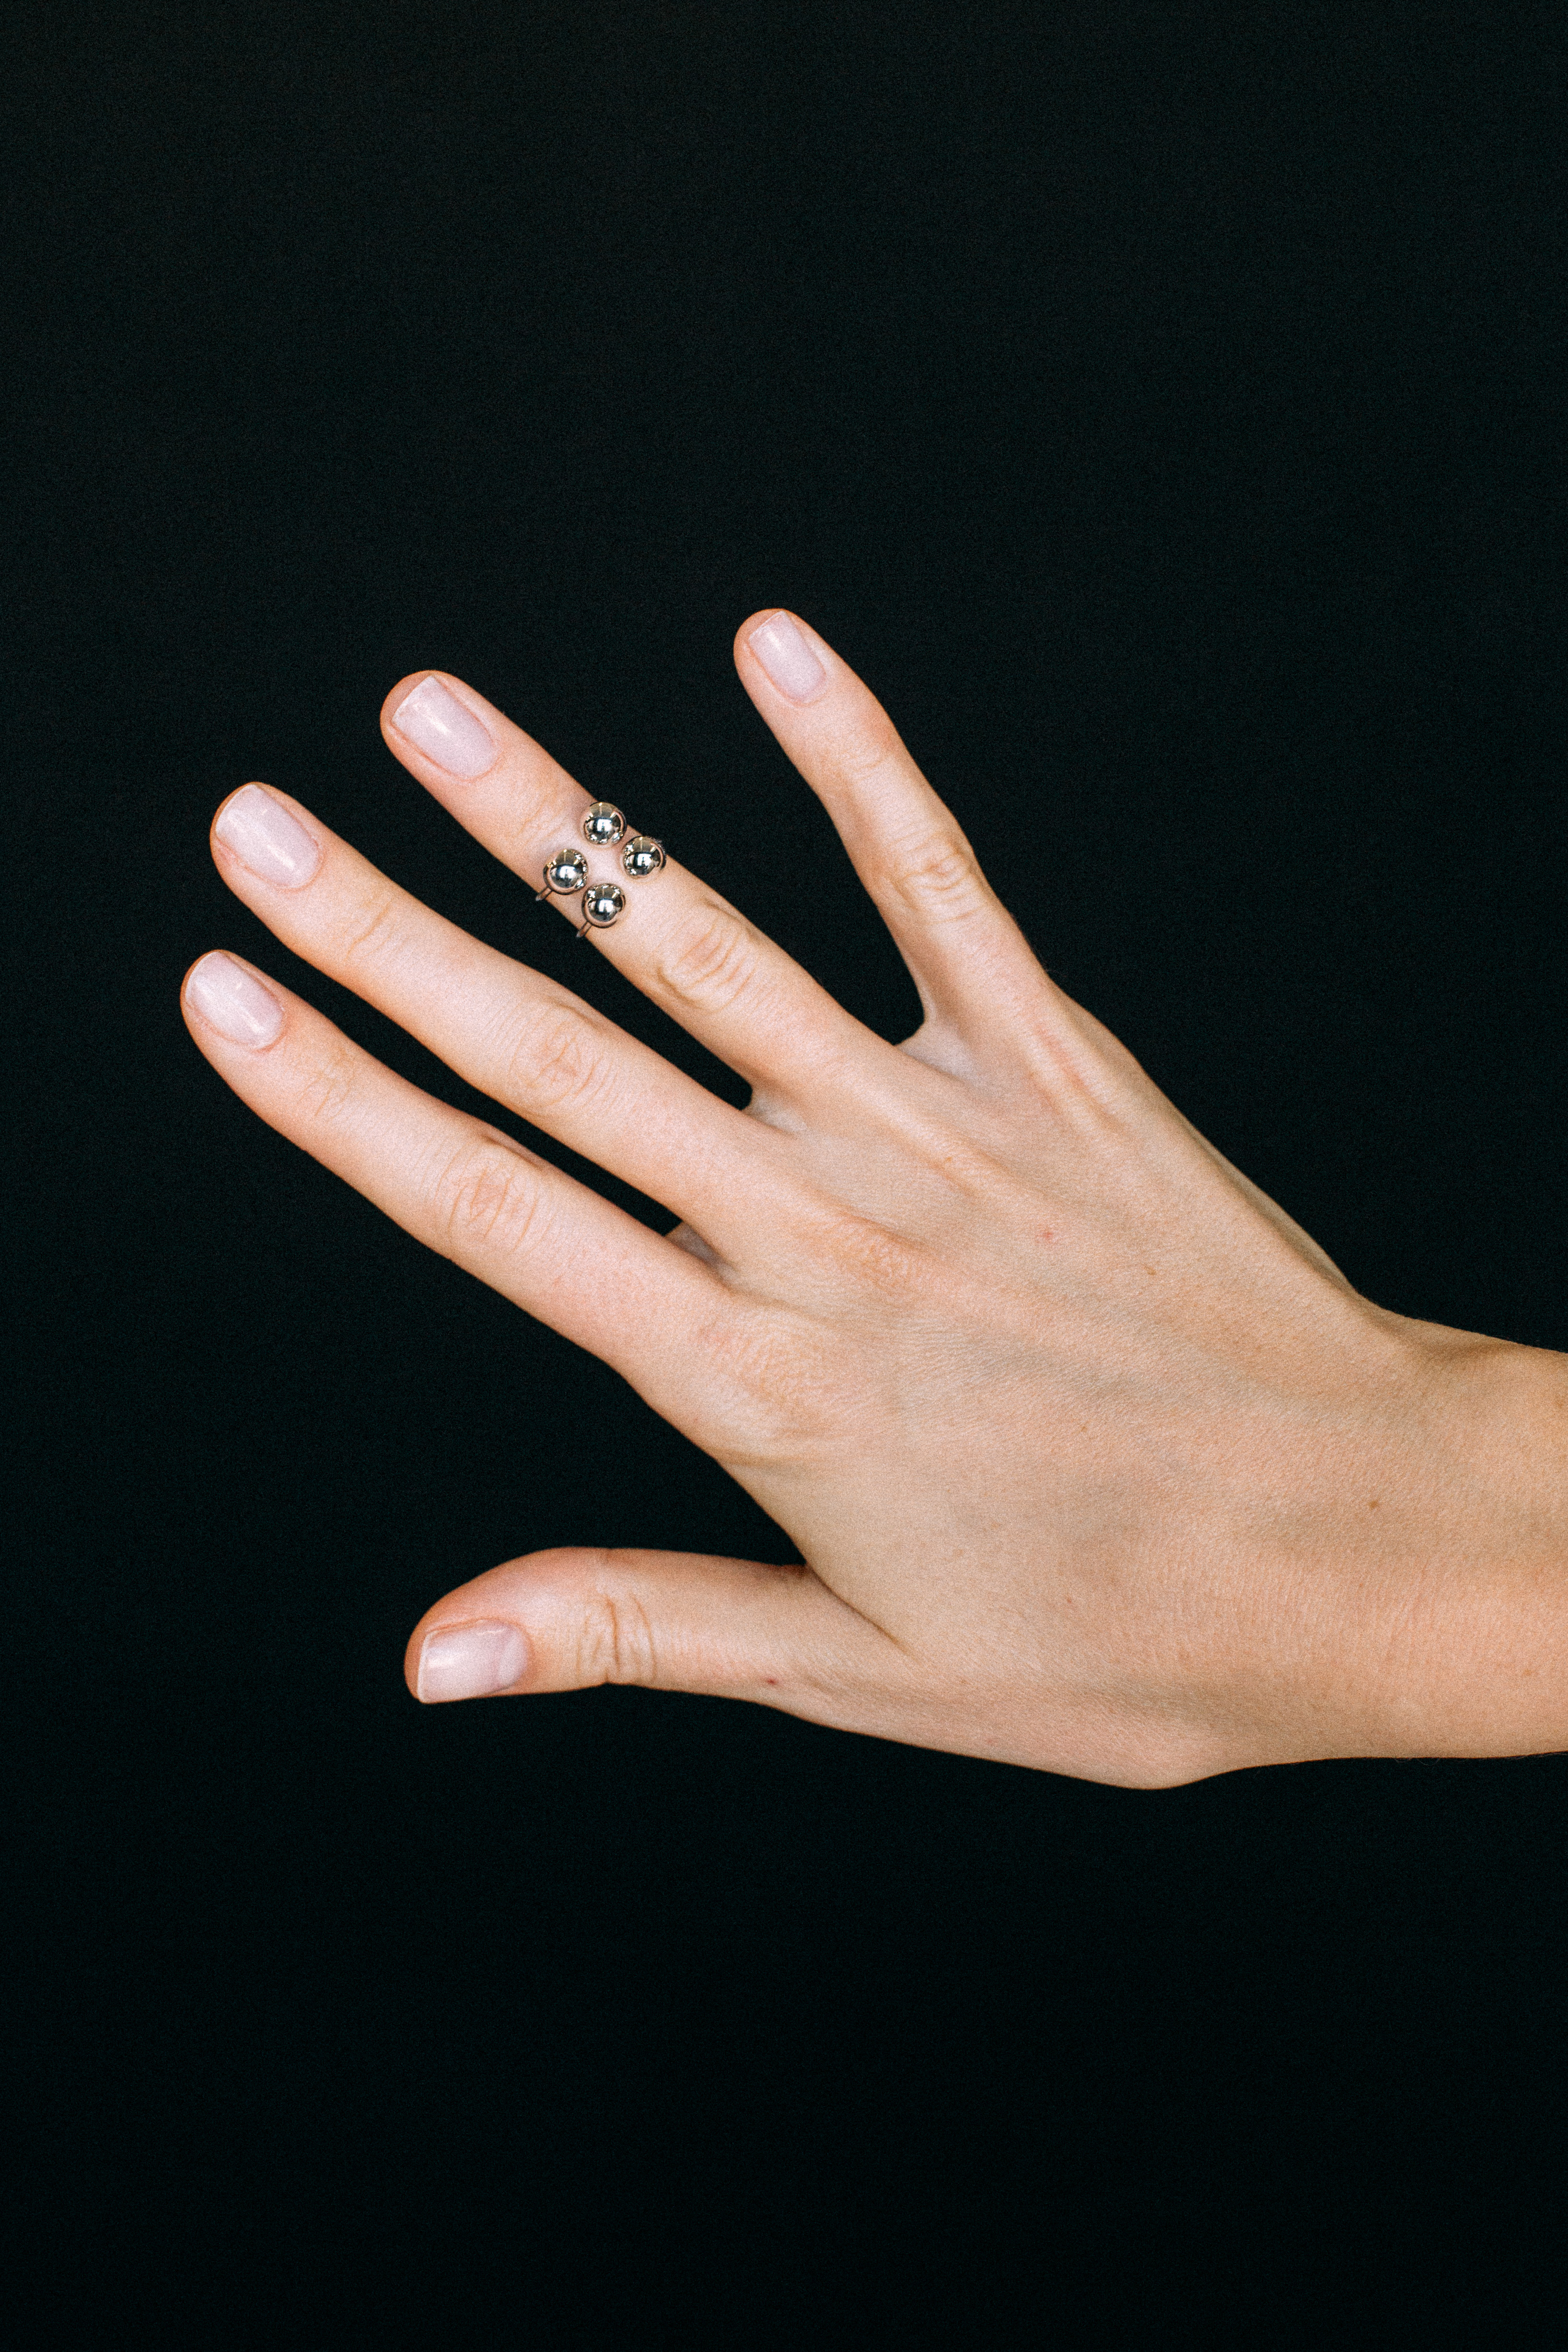 4 Orbs Ring - White Gold by Guzema Fine Jewellery on curated-crowd.com